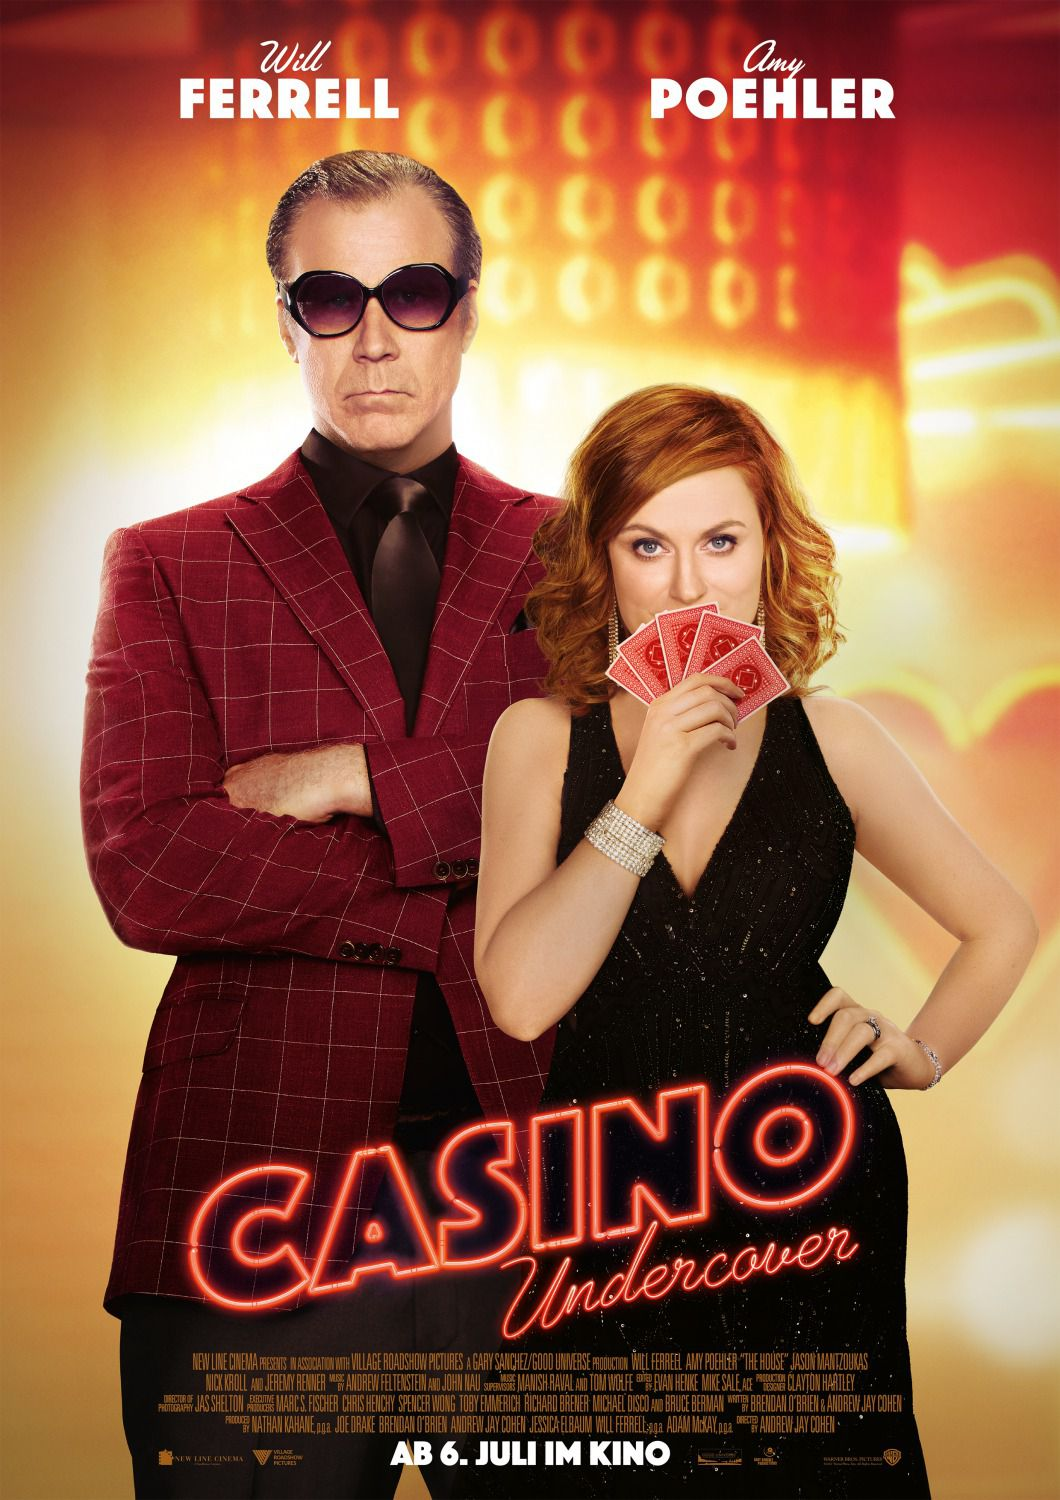 The House - Casinò - film comedy poster - Will Ferrell - Amy Poehler